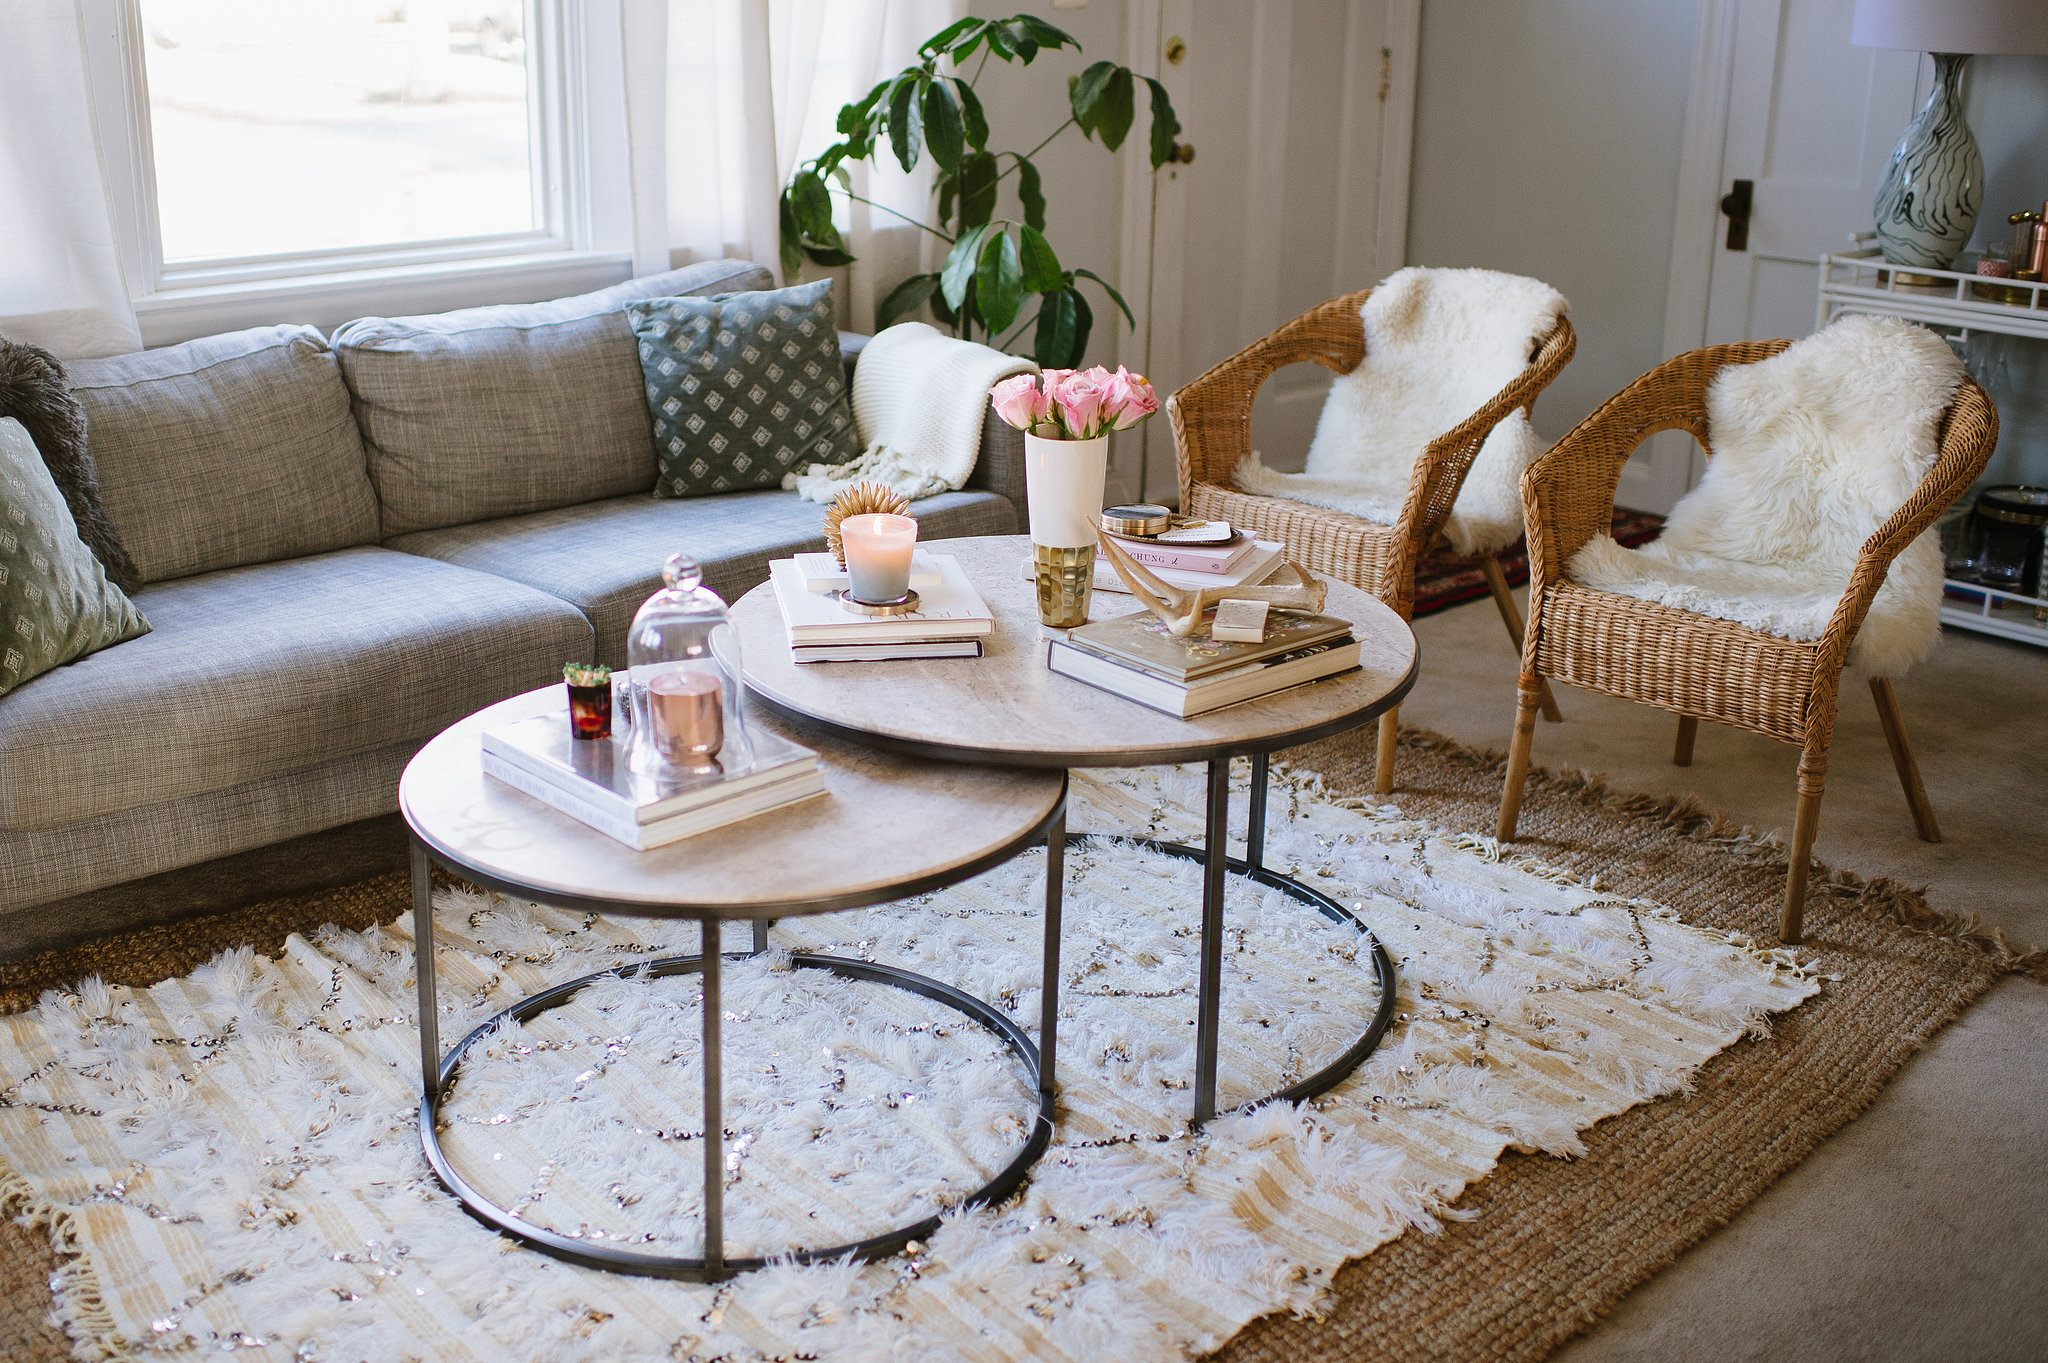 Two Ratan Chairs, Grey Sofa And Two Round Coffee Tables On A White Rug